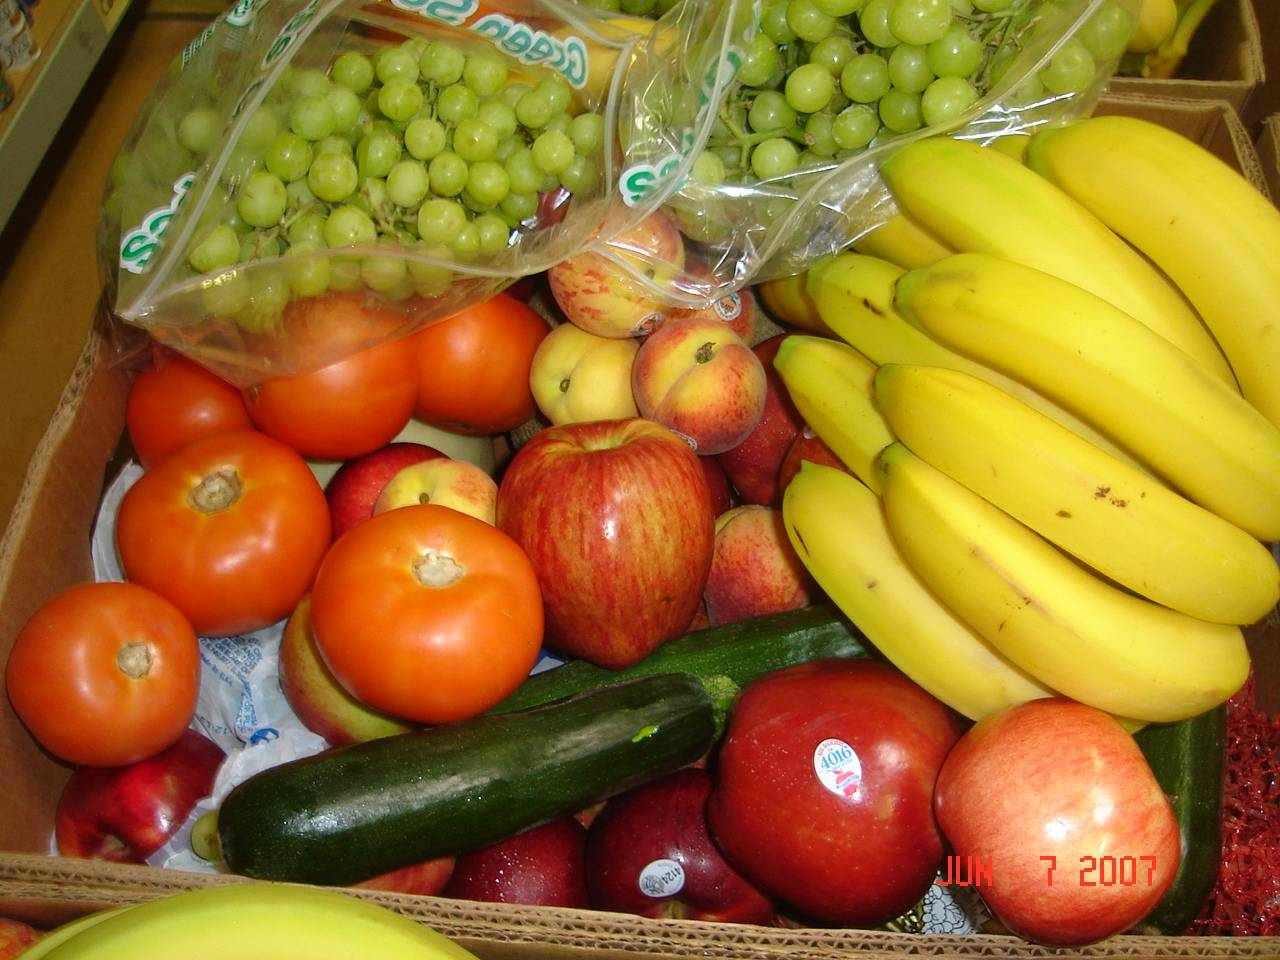 Fresh produce going to the needy families in HSP's Feed the Kids Project